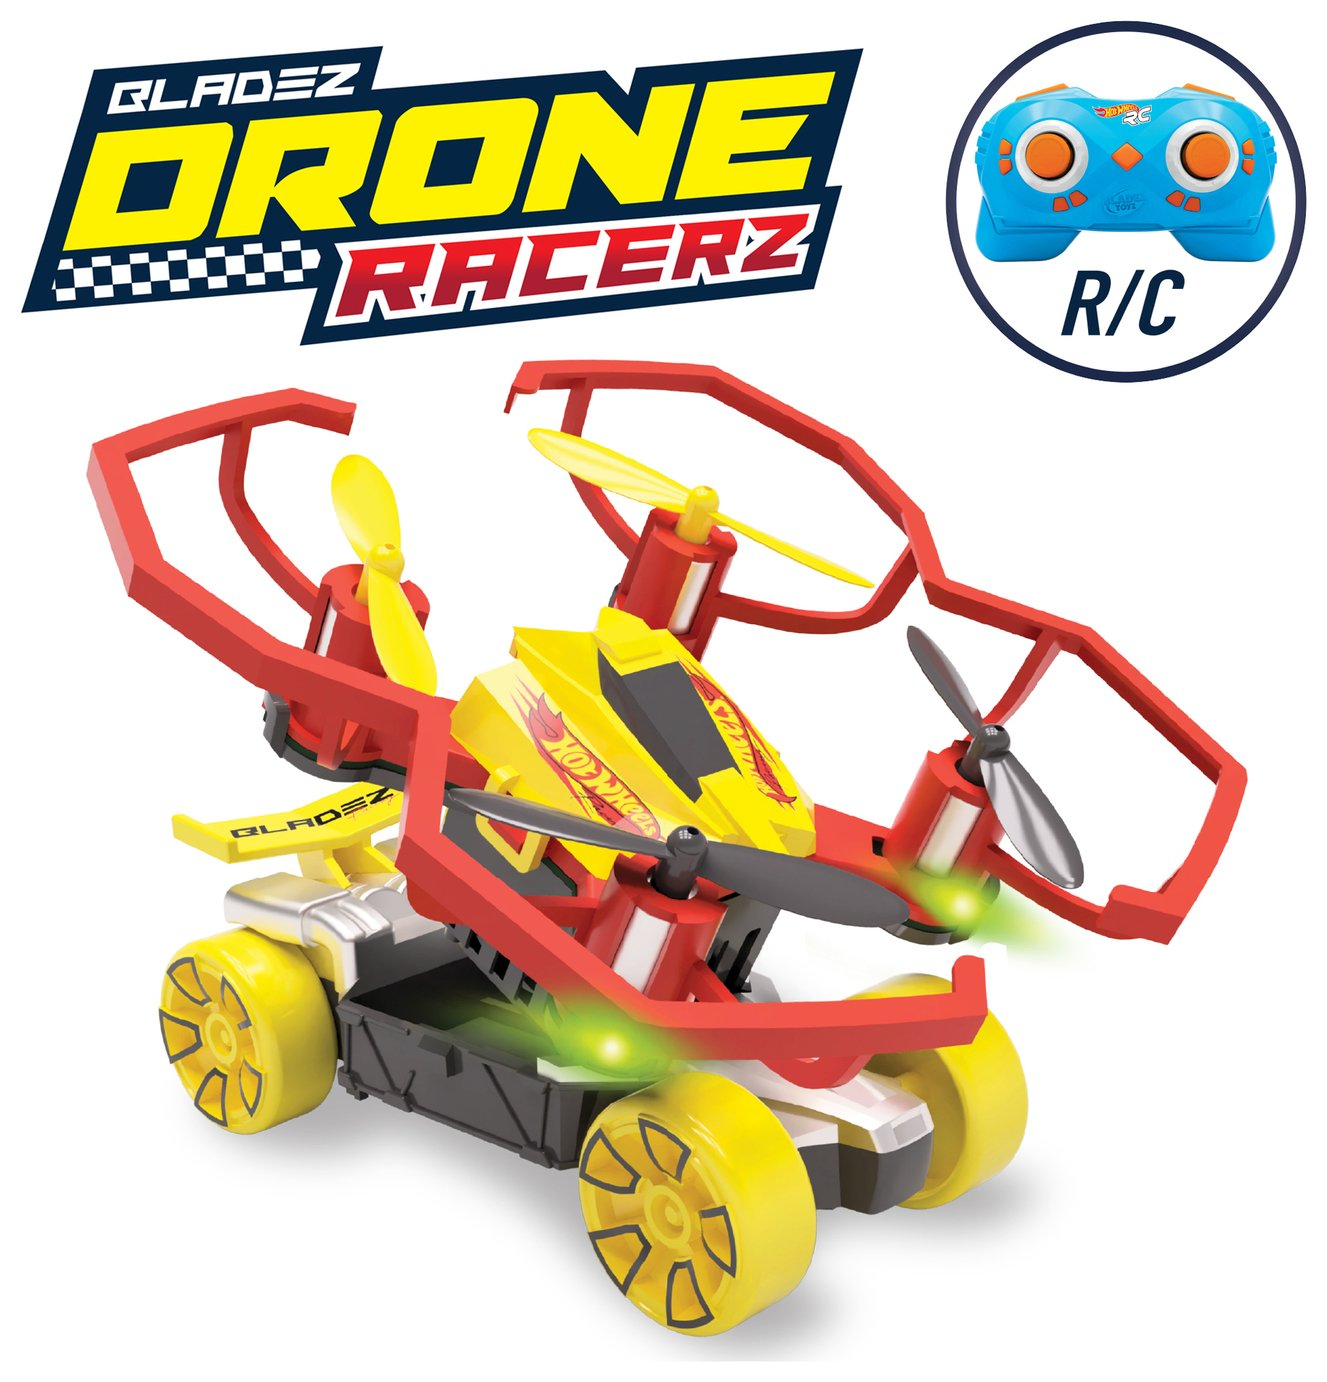 Image of Hot Wheels Drone Racerz Ramp It Up Set.